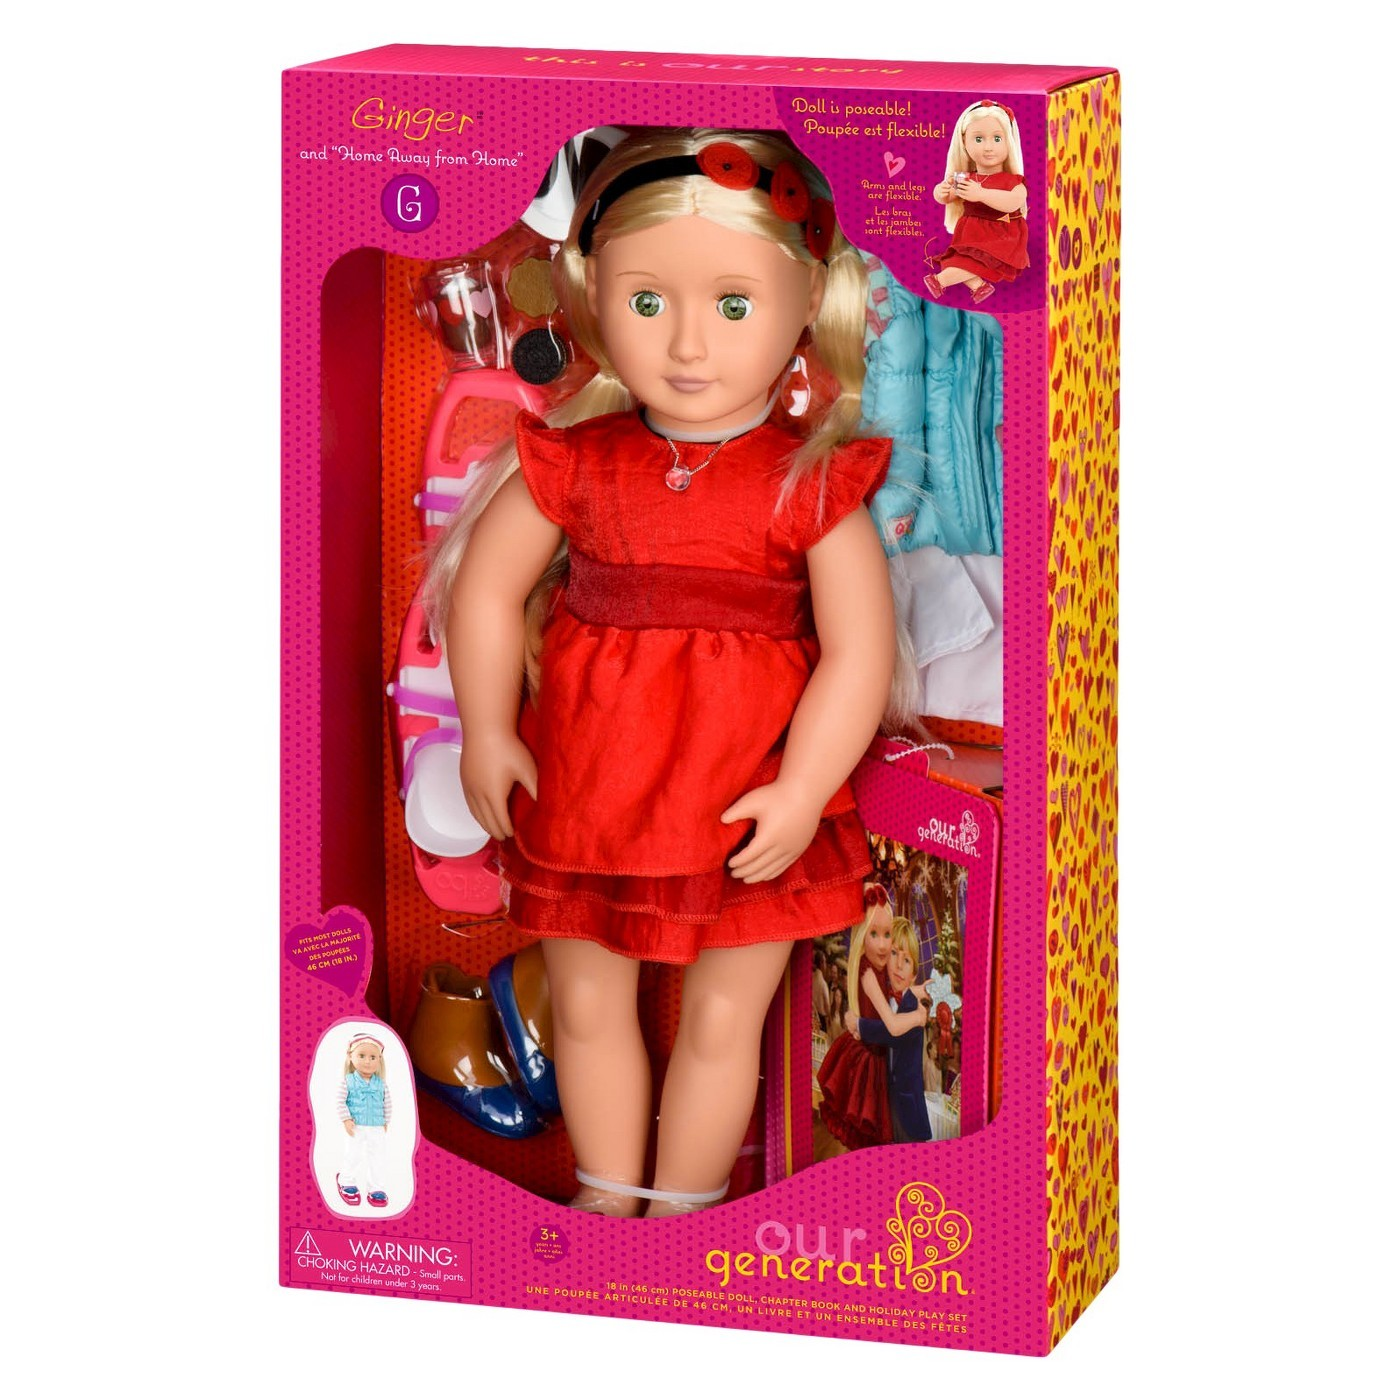 "Our Generation: 18"" Deluxe Doll & Book - Ginger image"